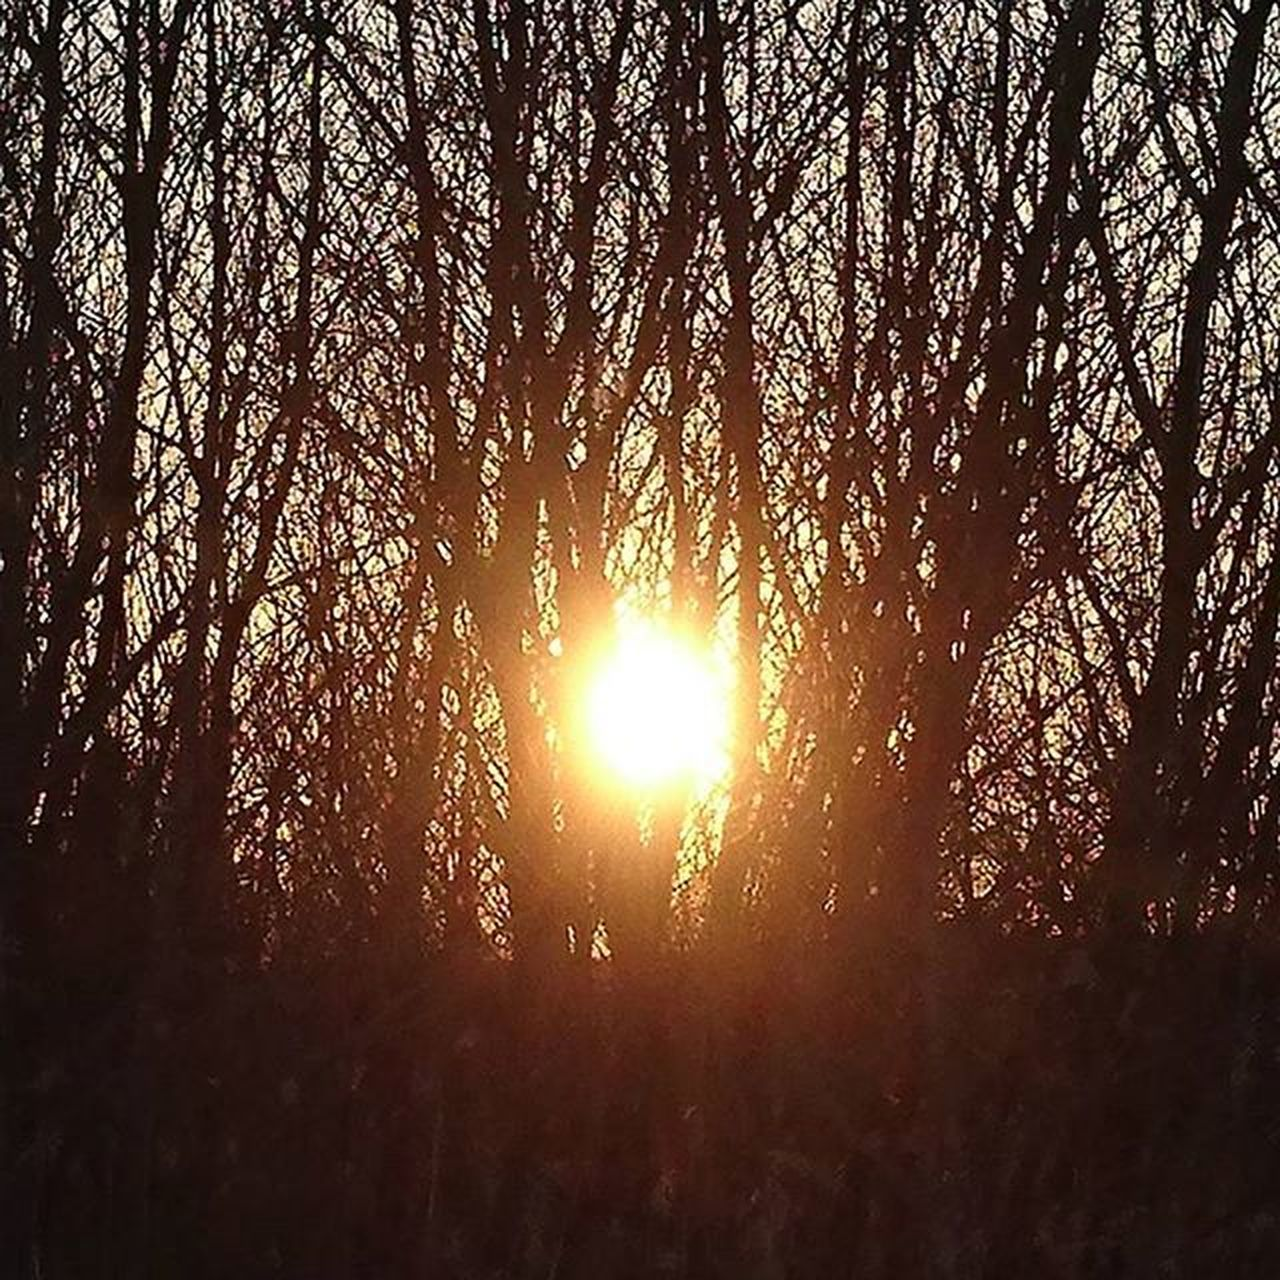 tree, nature, sun, forest, sunlight, lens flare, silhouette, sunbeam, growth, beauty in nature, sunset, tranquility, scenics, tranquil scene, outdoors, no people, low angle view, tree area, landscape, day, branch, sky